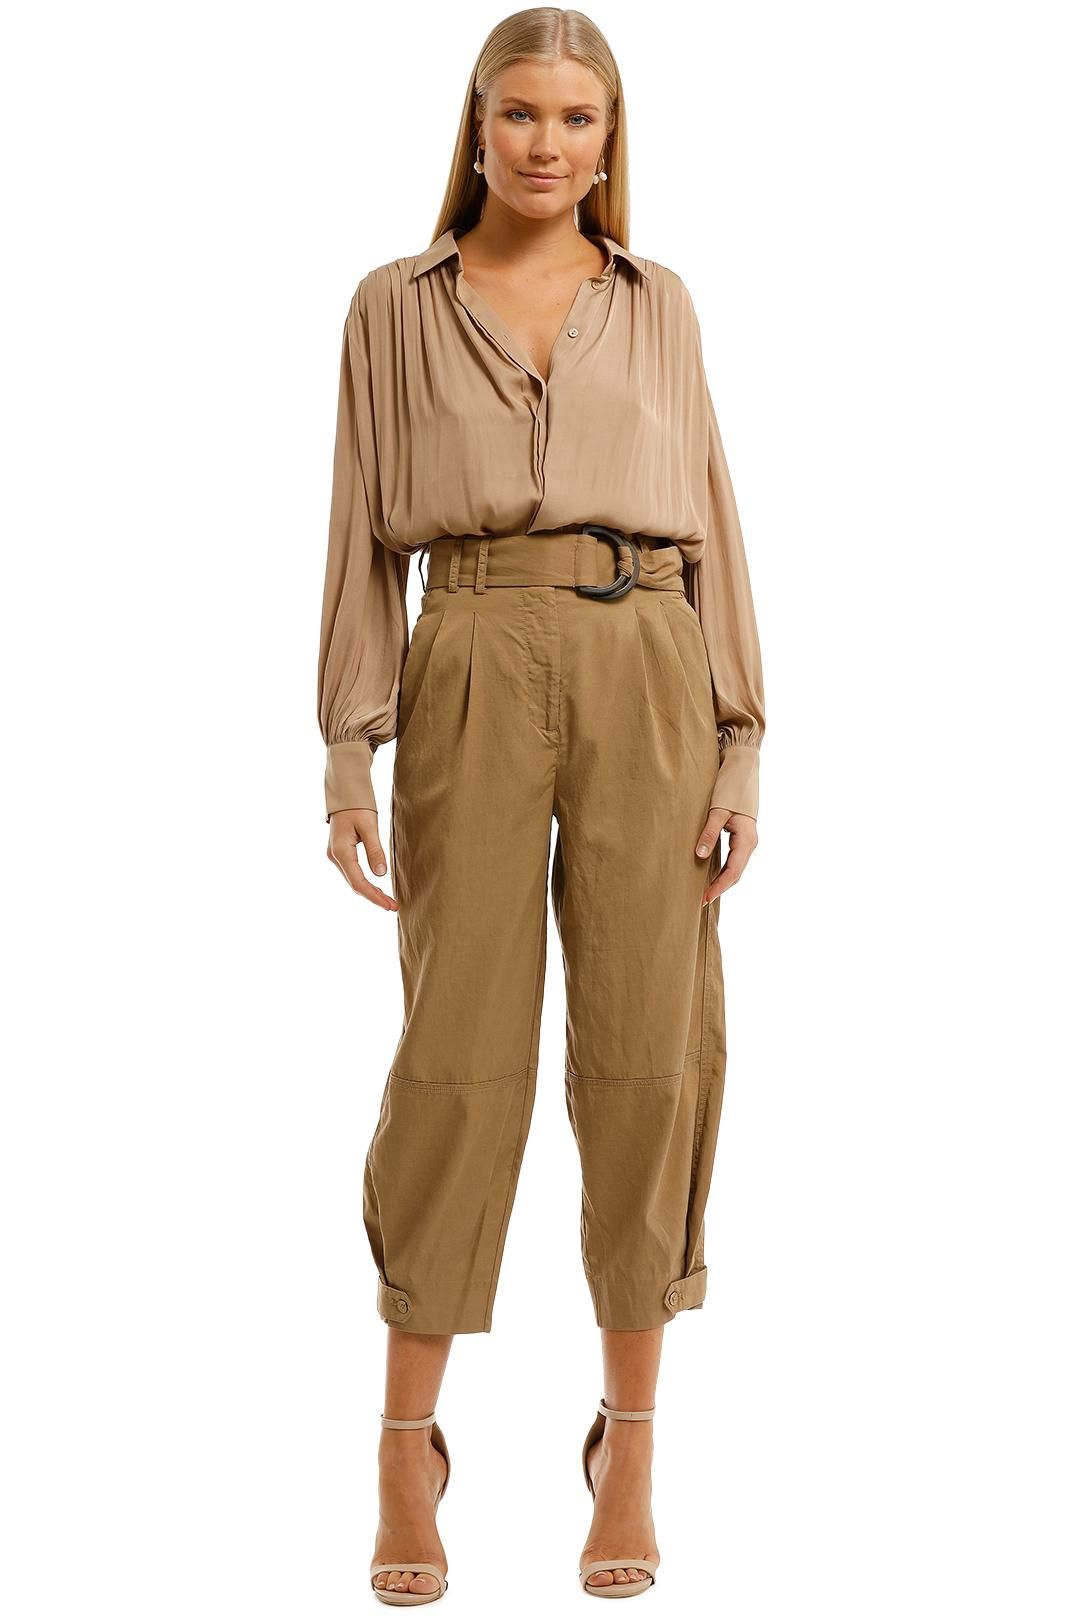 Witchery Buckle Utility Pant Caramel